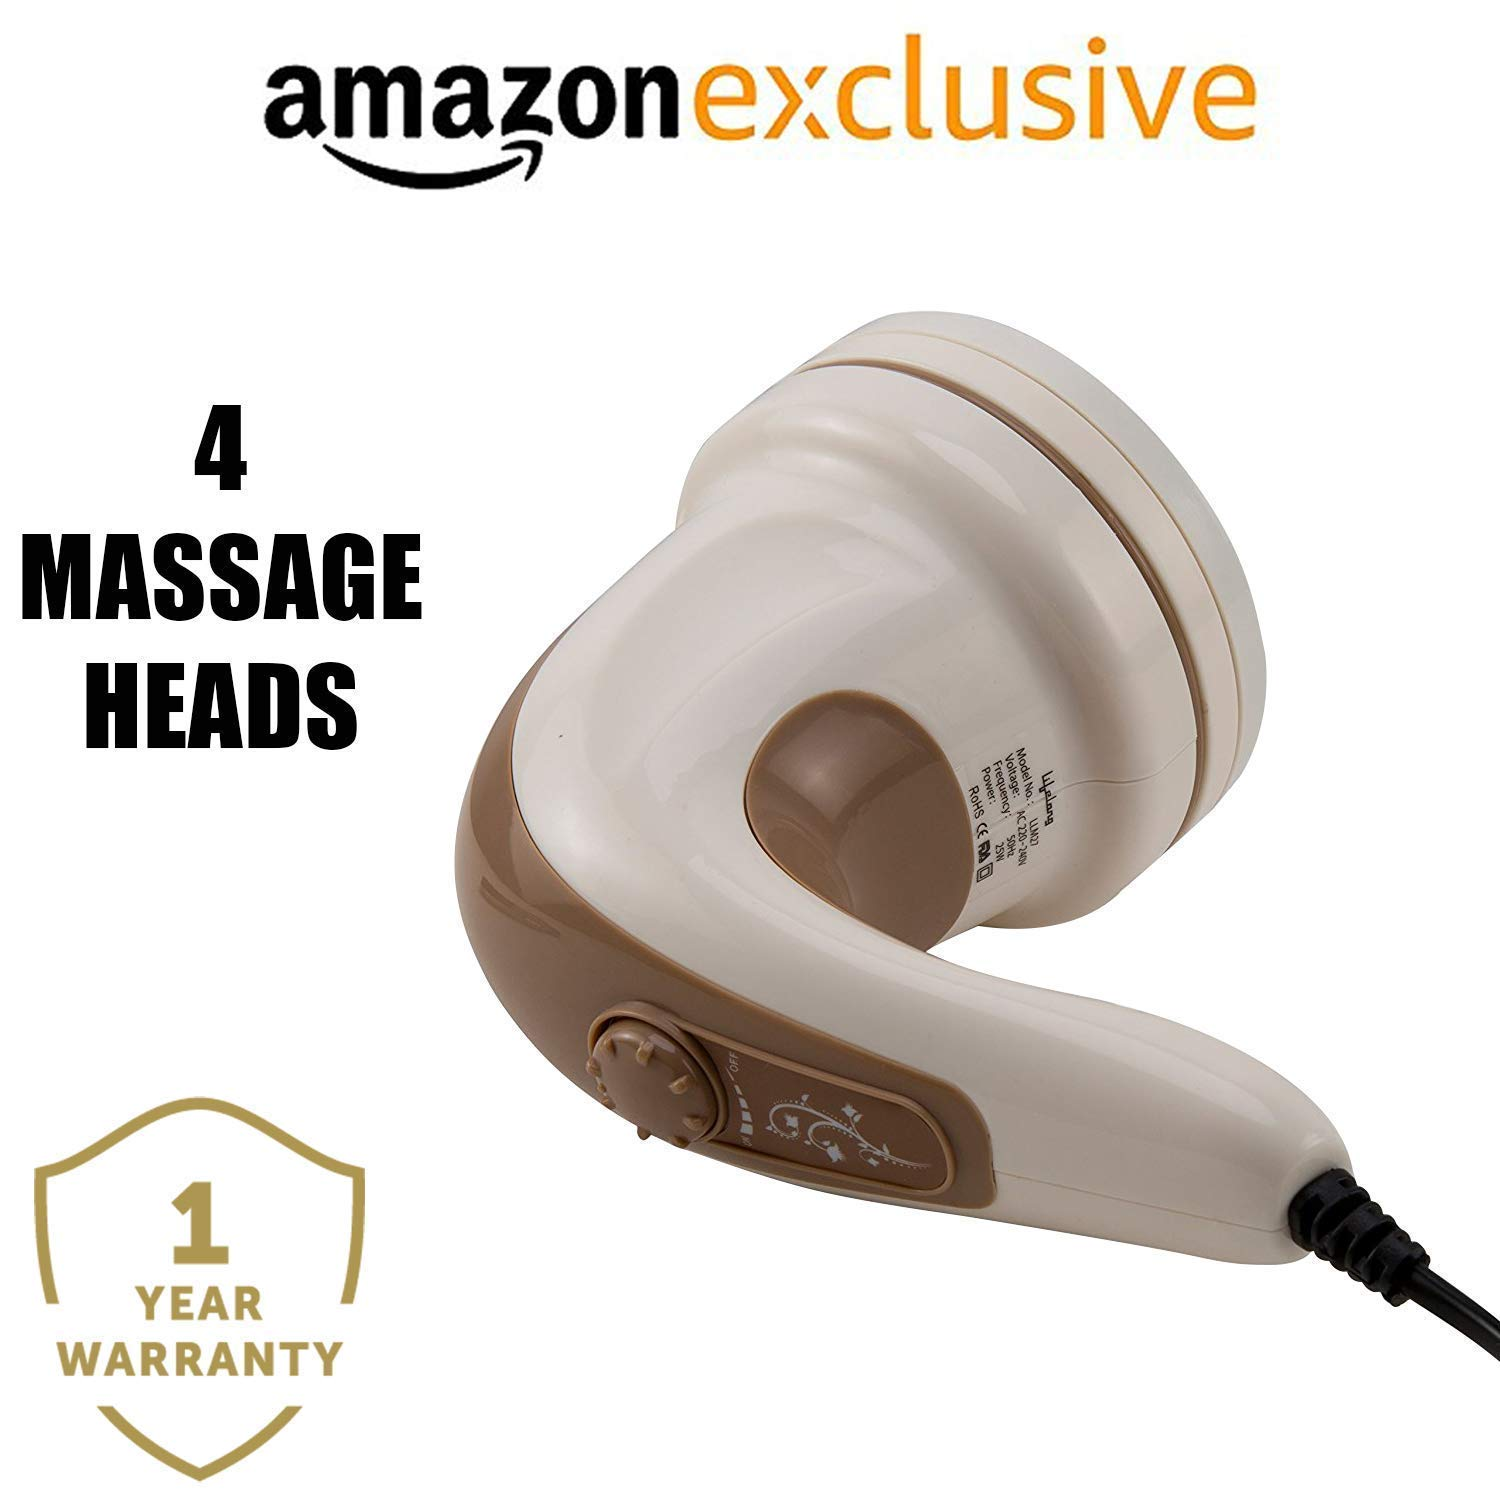 Lifelong LLM27 Electric Handheld Full Body Massager (Brown) product image